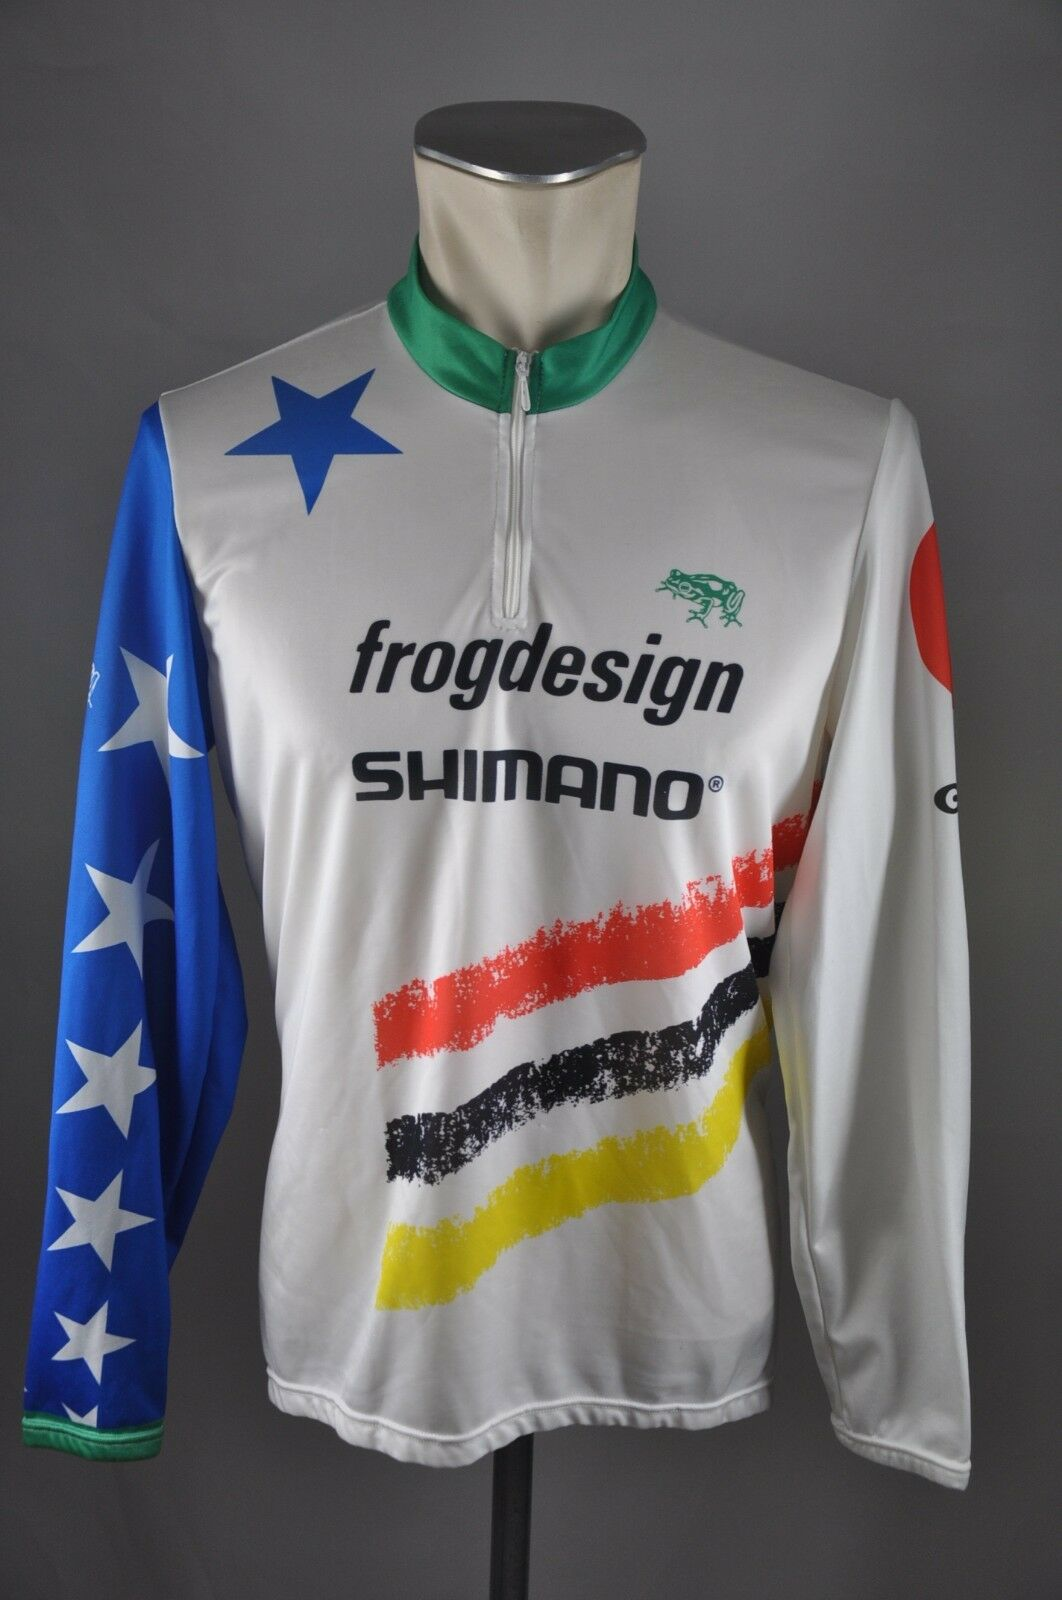 Frogdesign Team 55cm 90s Gonso CYCLING JERSEY BIKE Taglia L-BW 55cm Team CYCLING MAGLIA k4 89a029